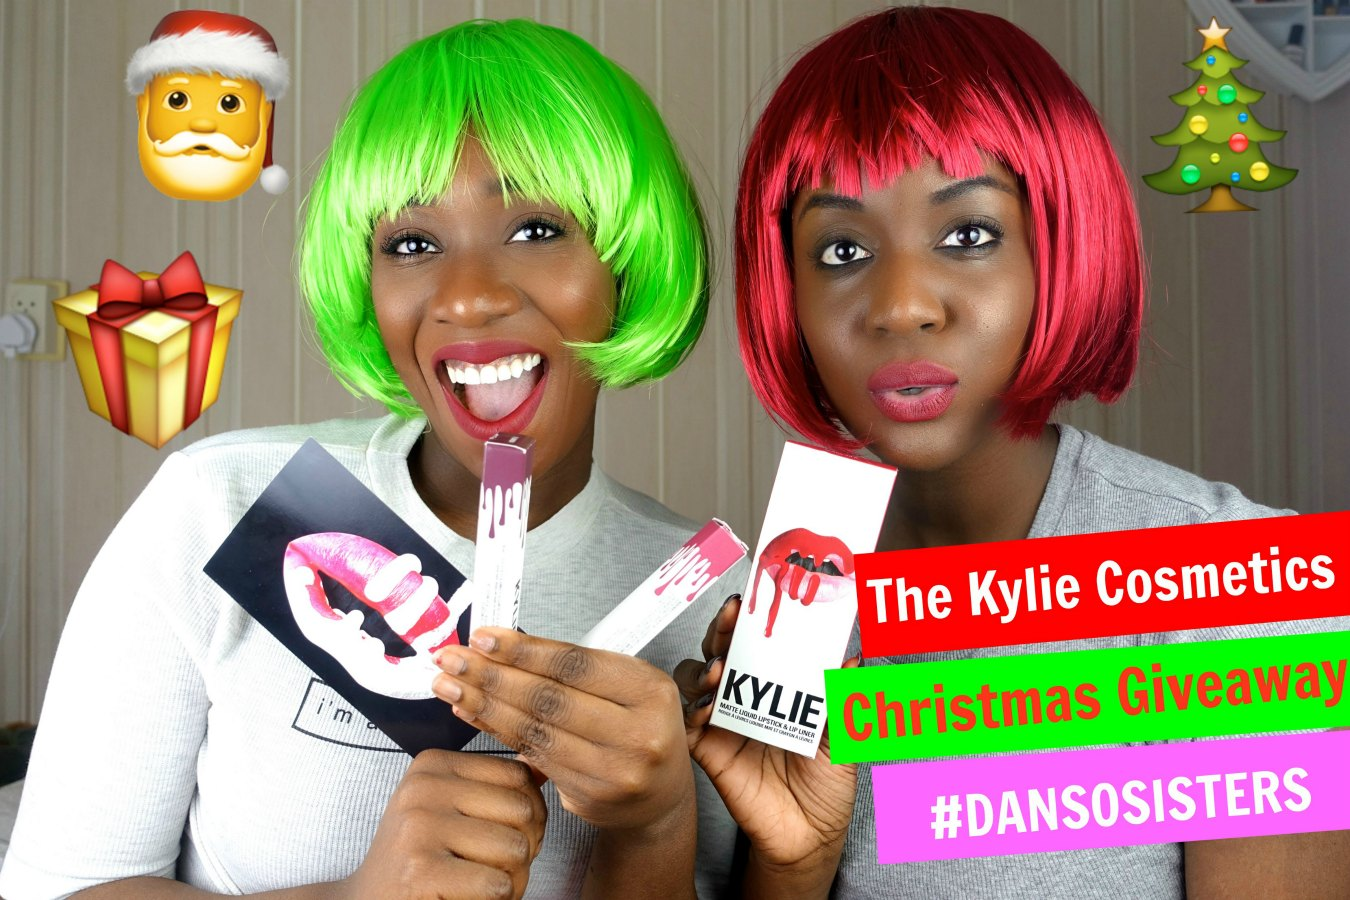 The Kylie Cosmetics Christmas Giveaway dansosisters